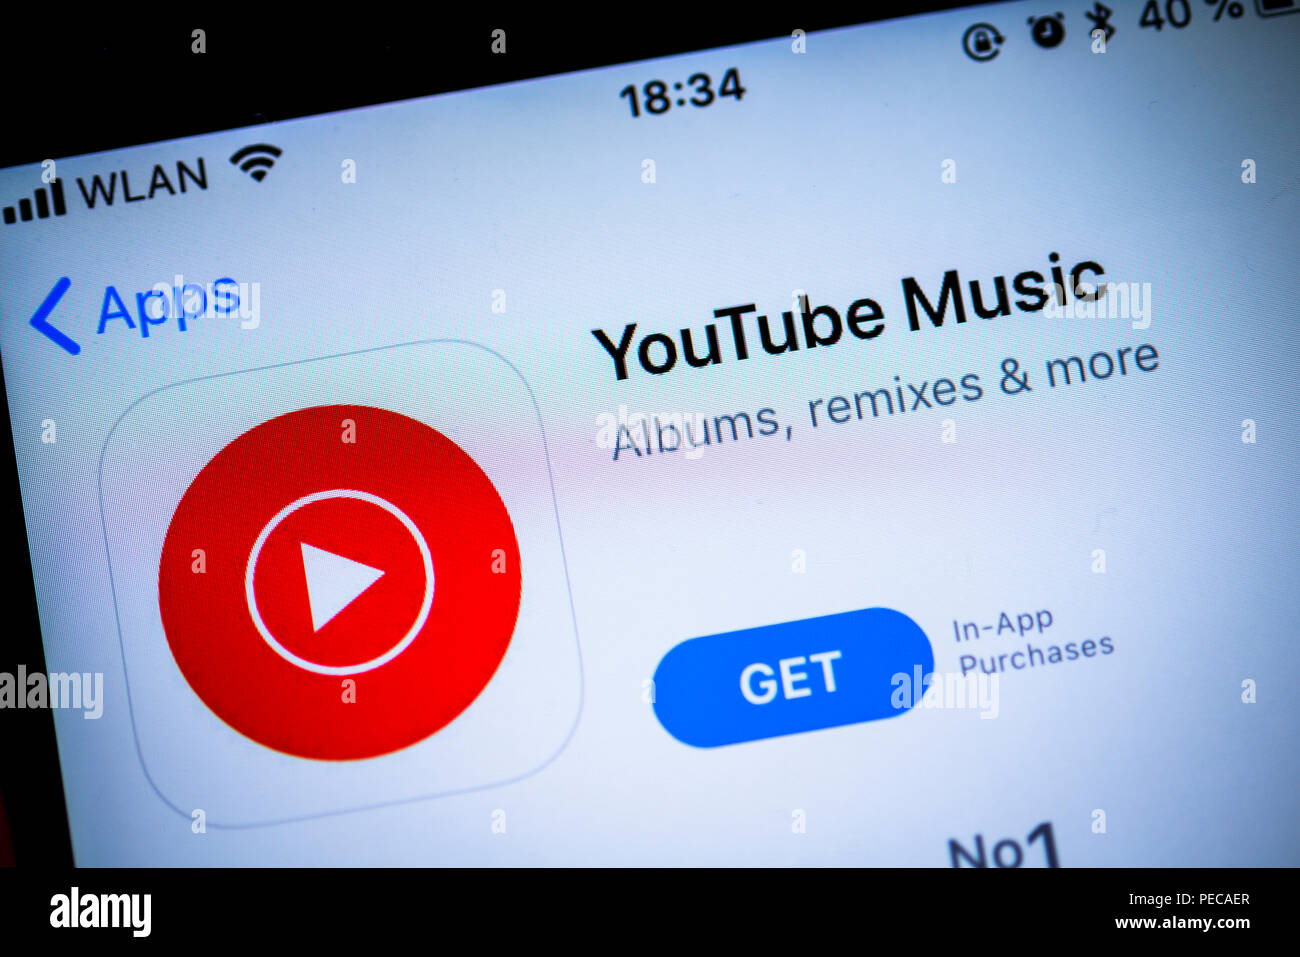 Youtube Music App In The Apple App Store Music Streaming Service Video Platform App Icon Display On A Screen Of A Mobile Stock Photo Alamy